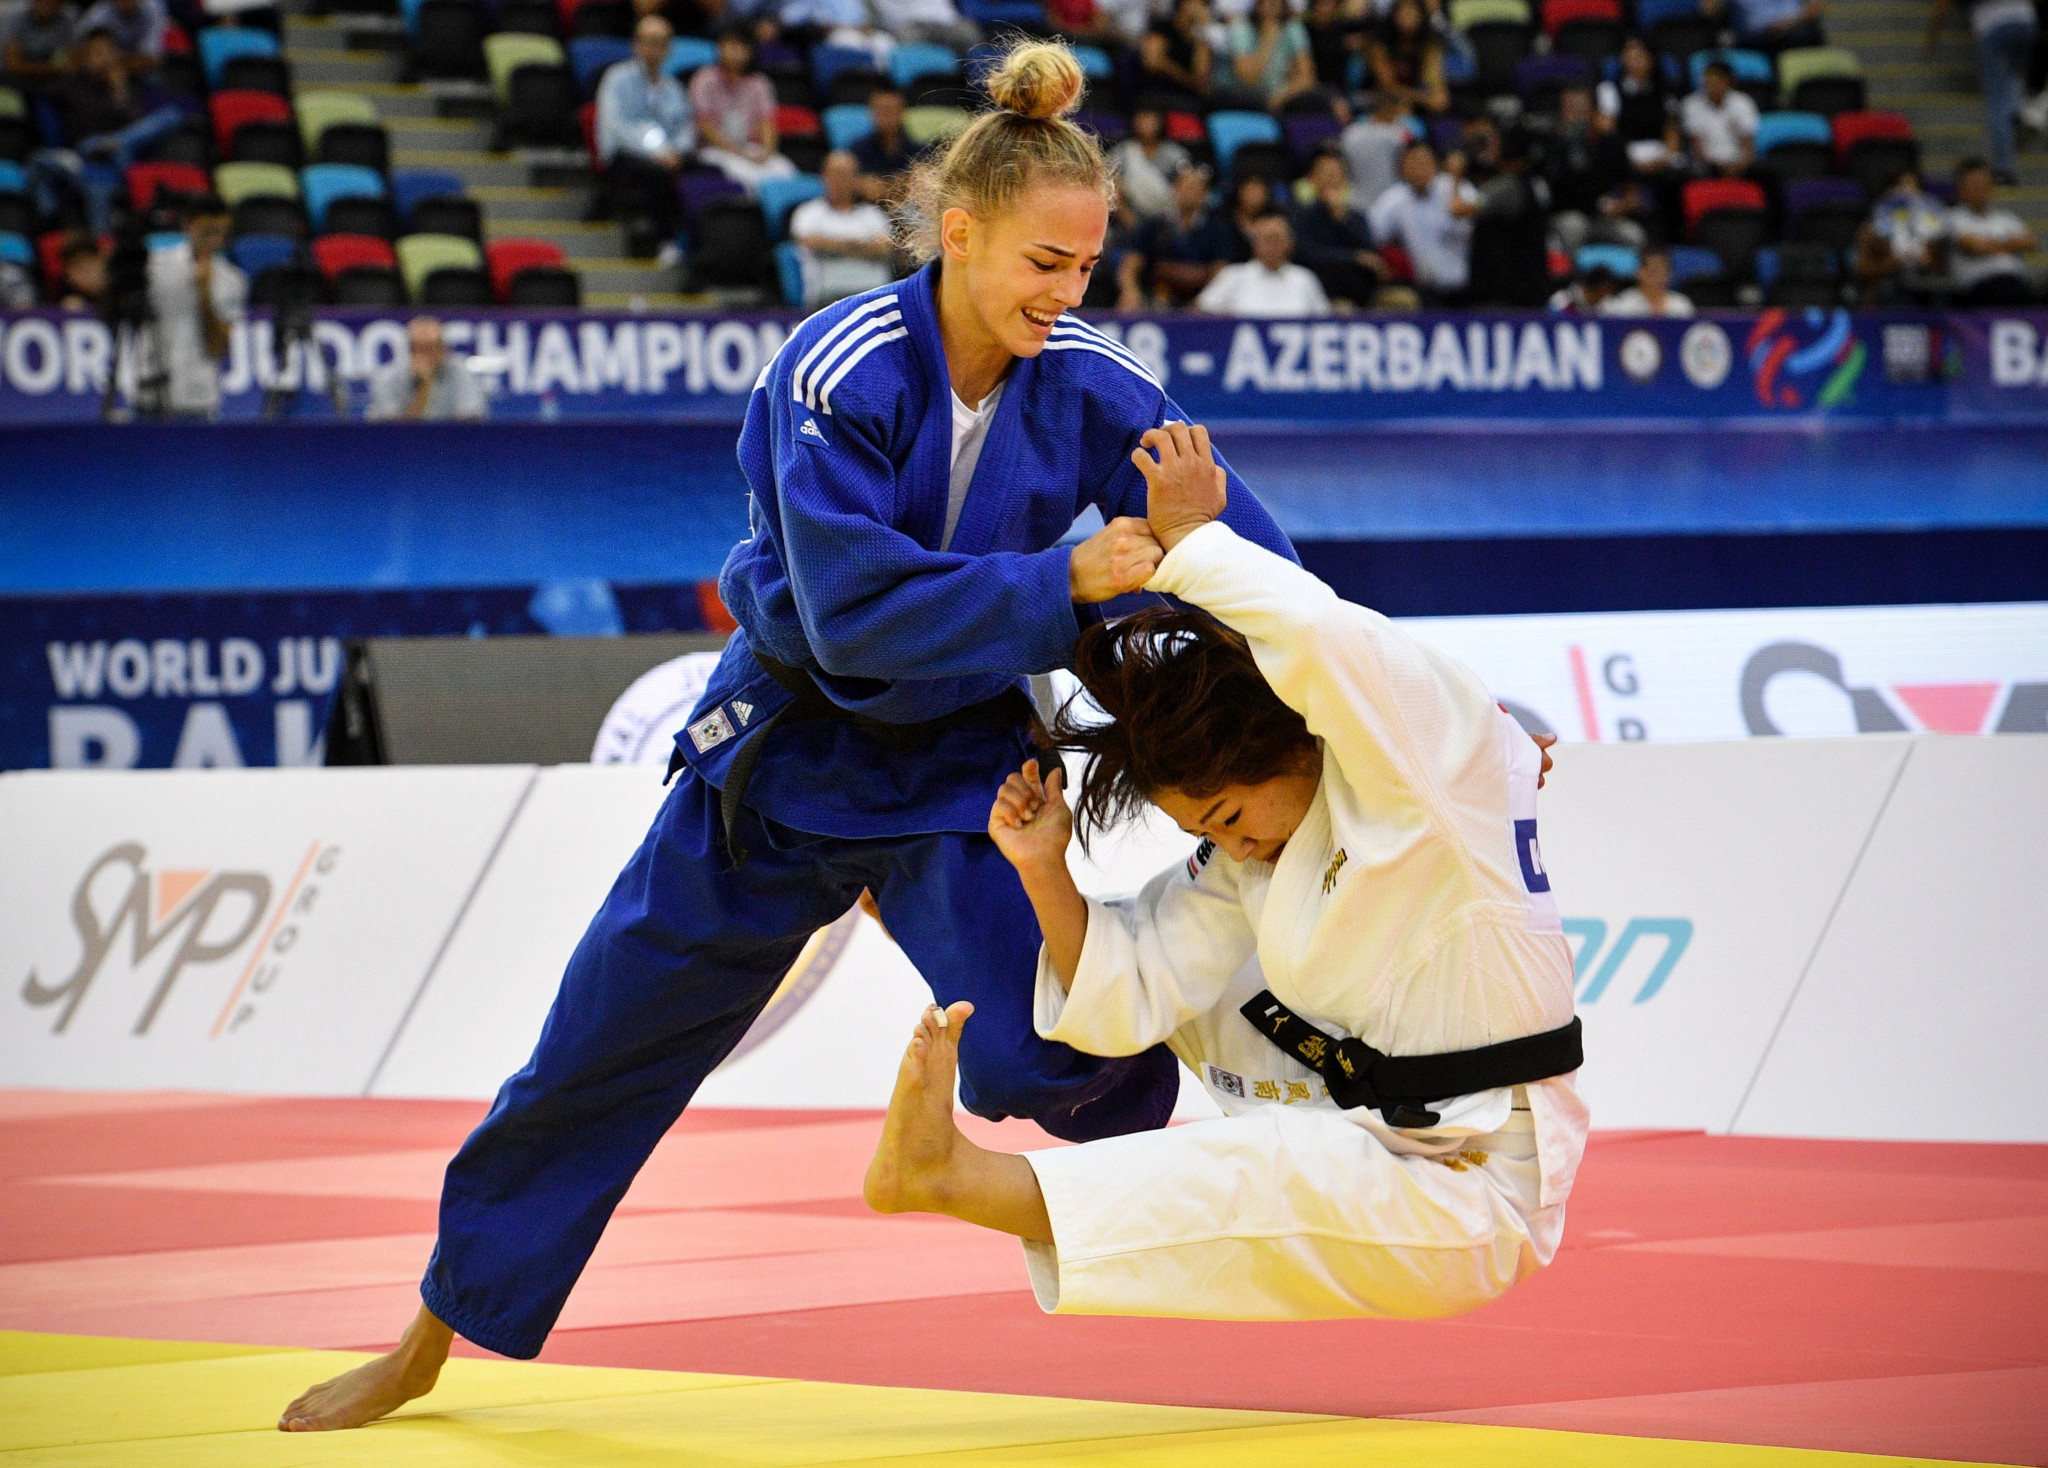 Ukrainian whizz-kid Bilodid set to return to competition at IJF Grand Prix in Tbilisi